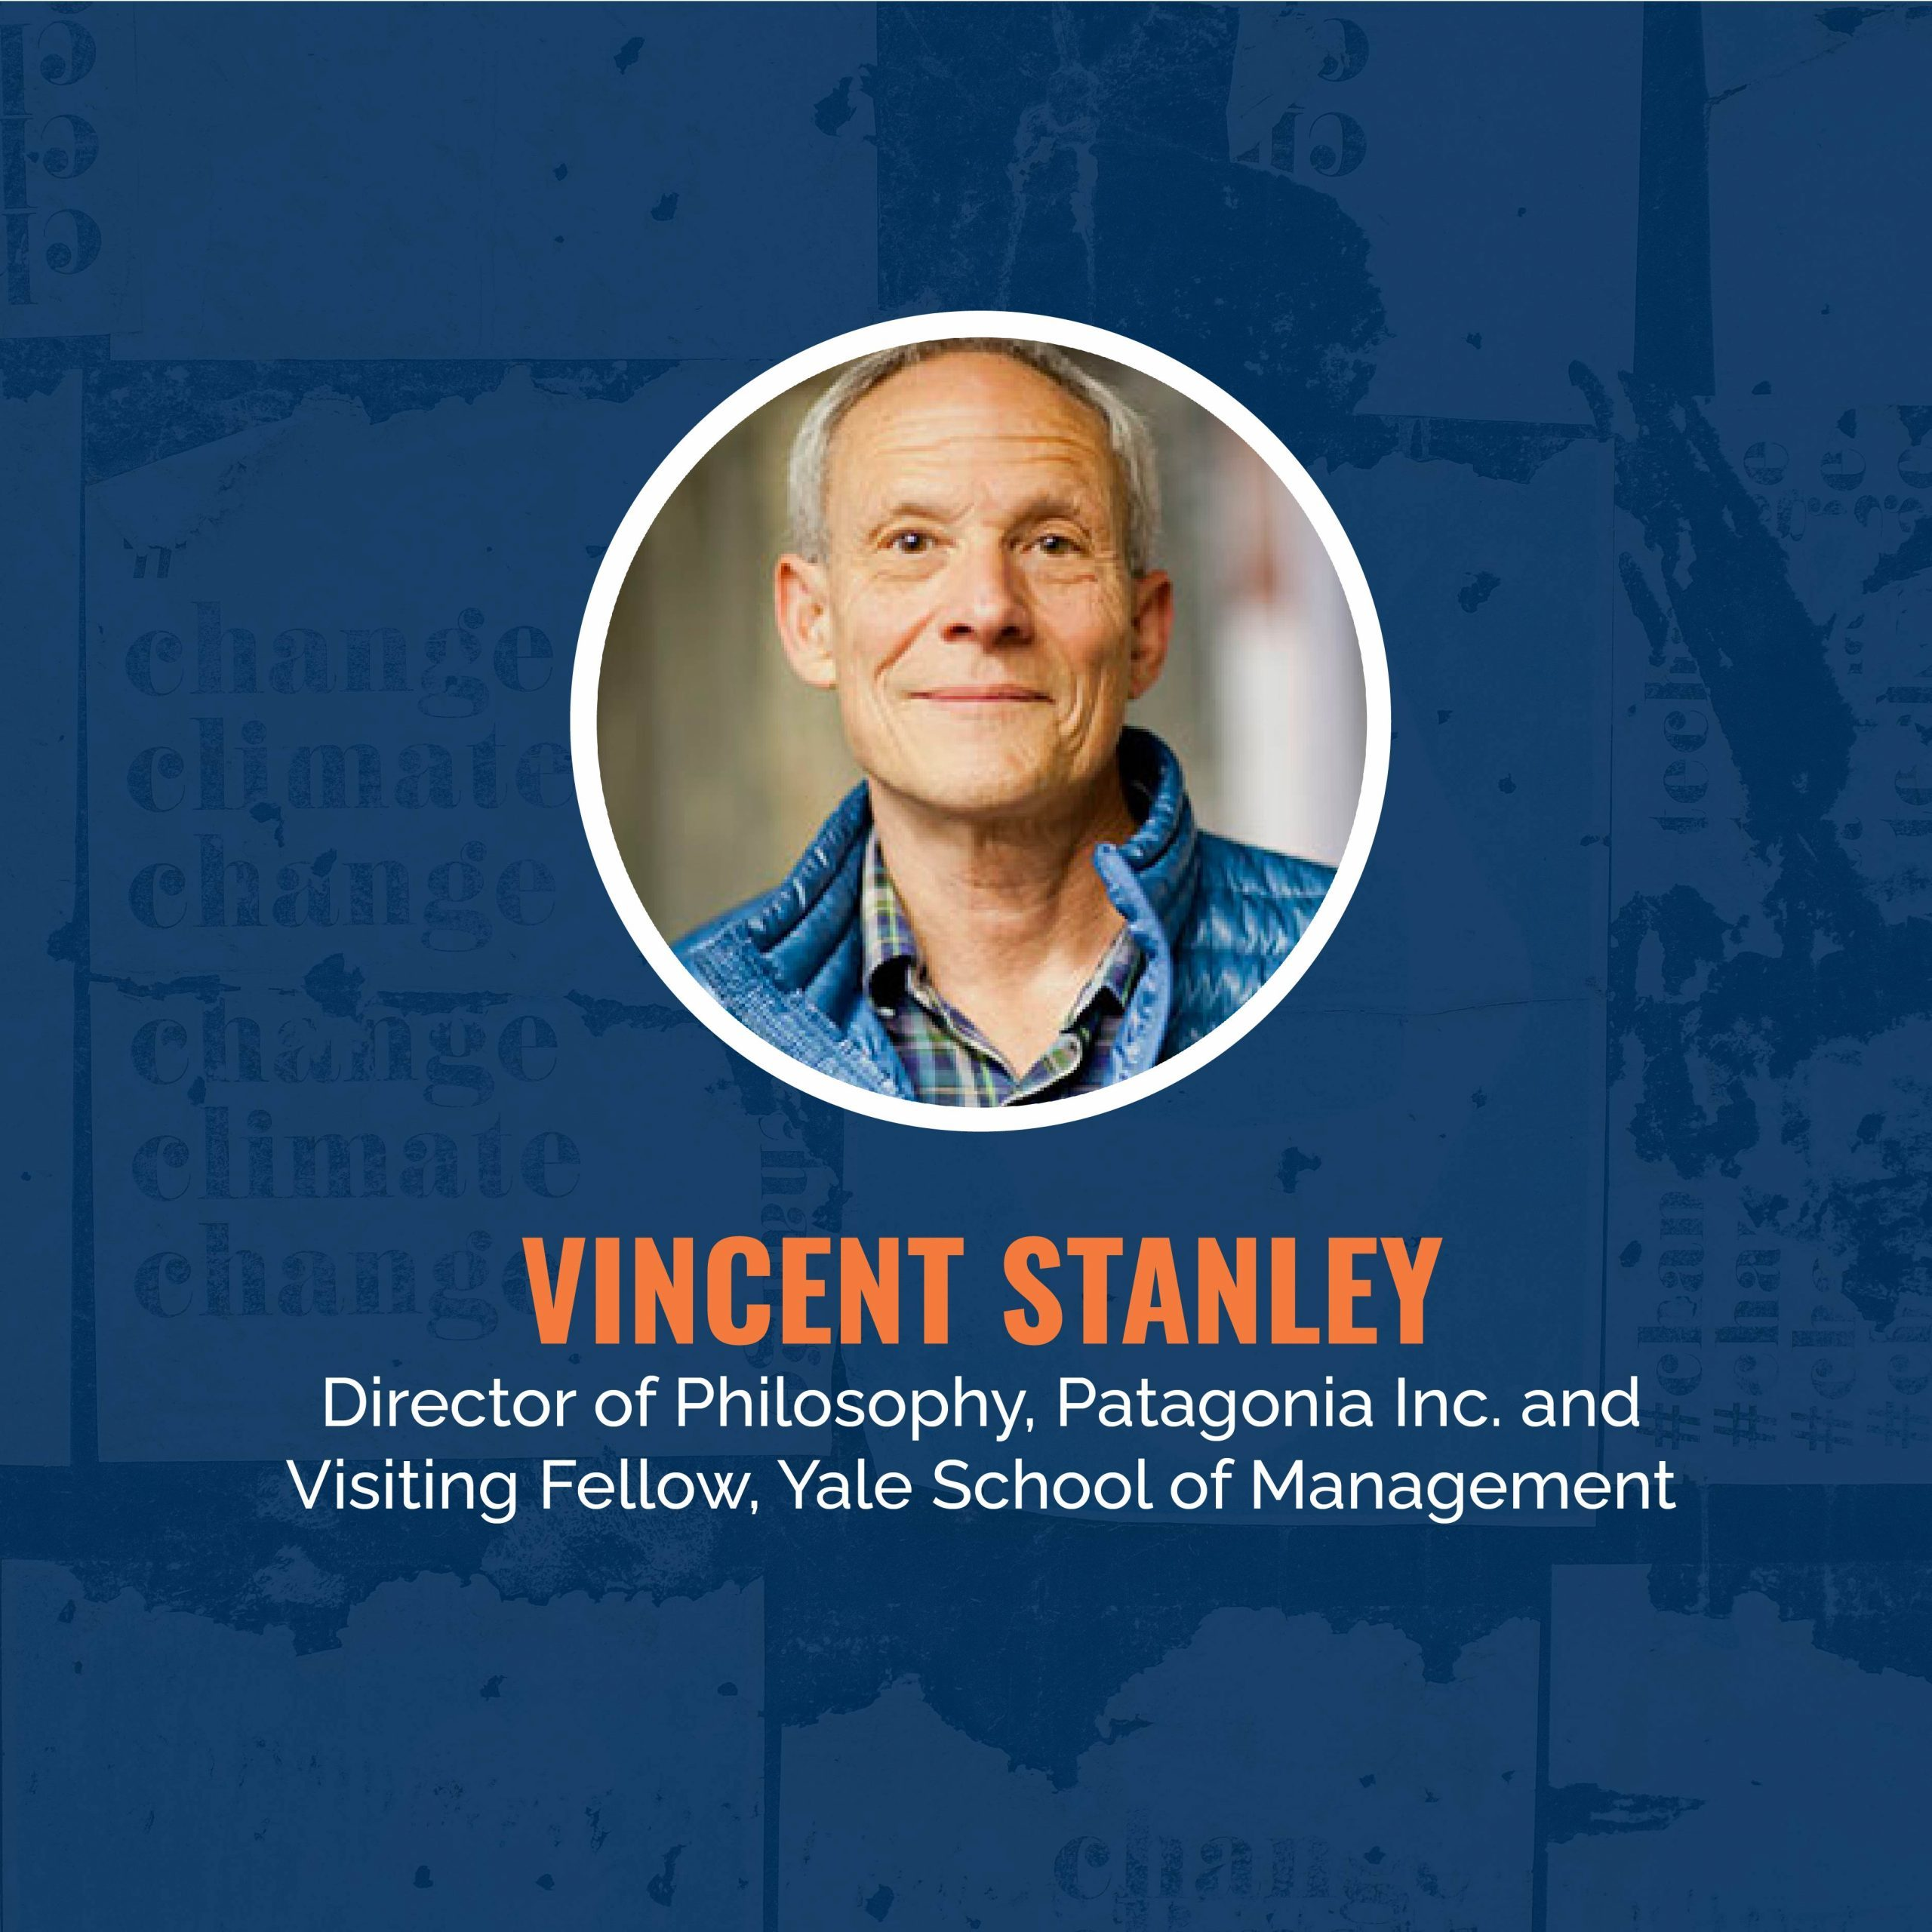 keynote speaker vincent stanley from patagonia